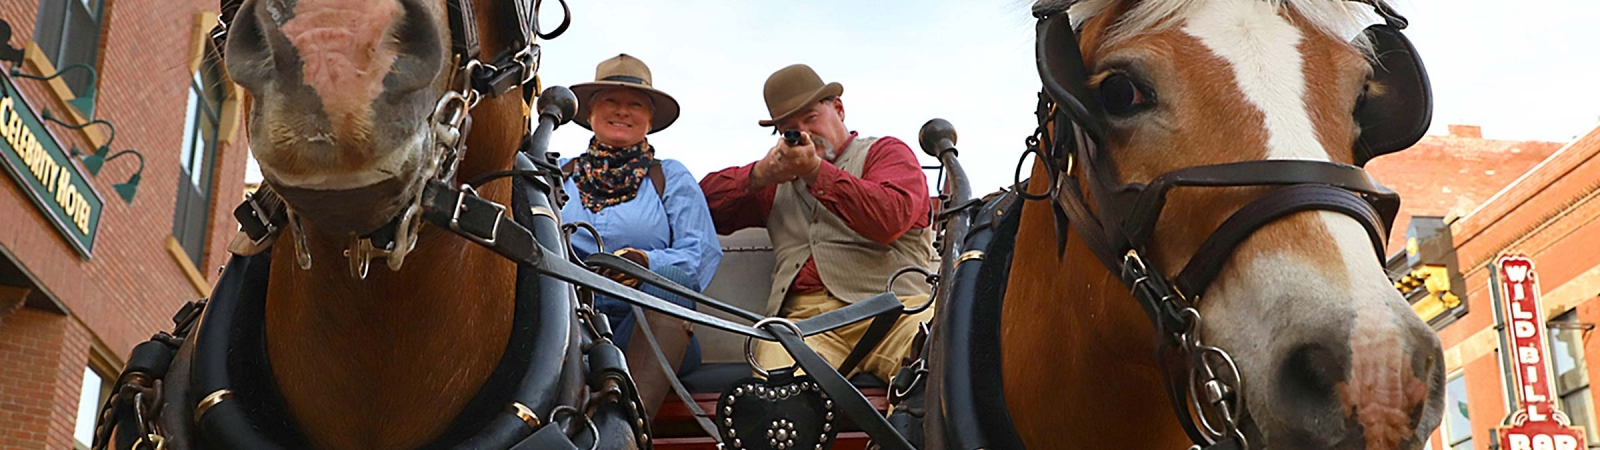 Deadwood Stagecoach Rides